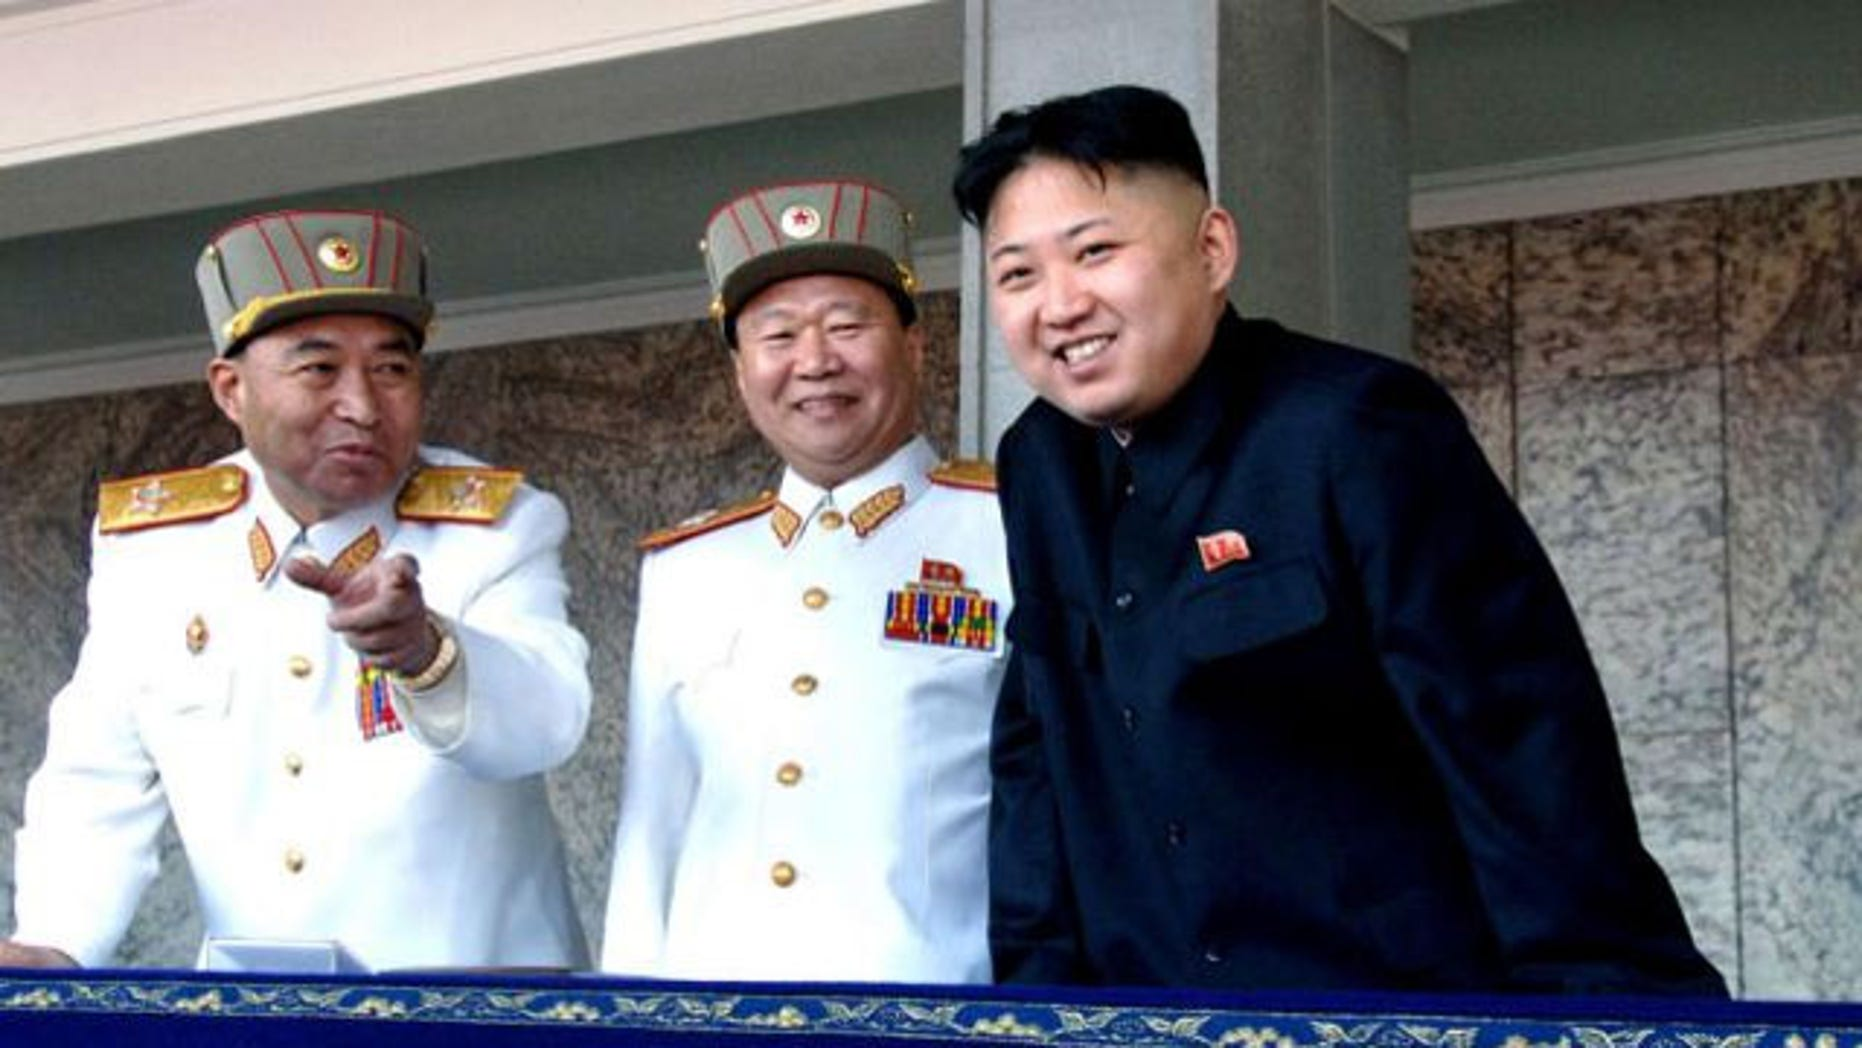 April 15, 2012: Kim Jong-un (right), smiles with Vice Marshal and Vice Chairman of the Central Military Commission Choe Ryong-hae (center) and Vice Marshal and the military's General Staff Chief Ri Yong-ho (AP)